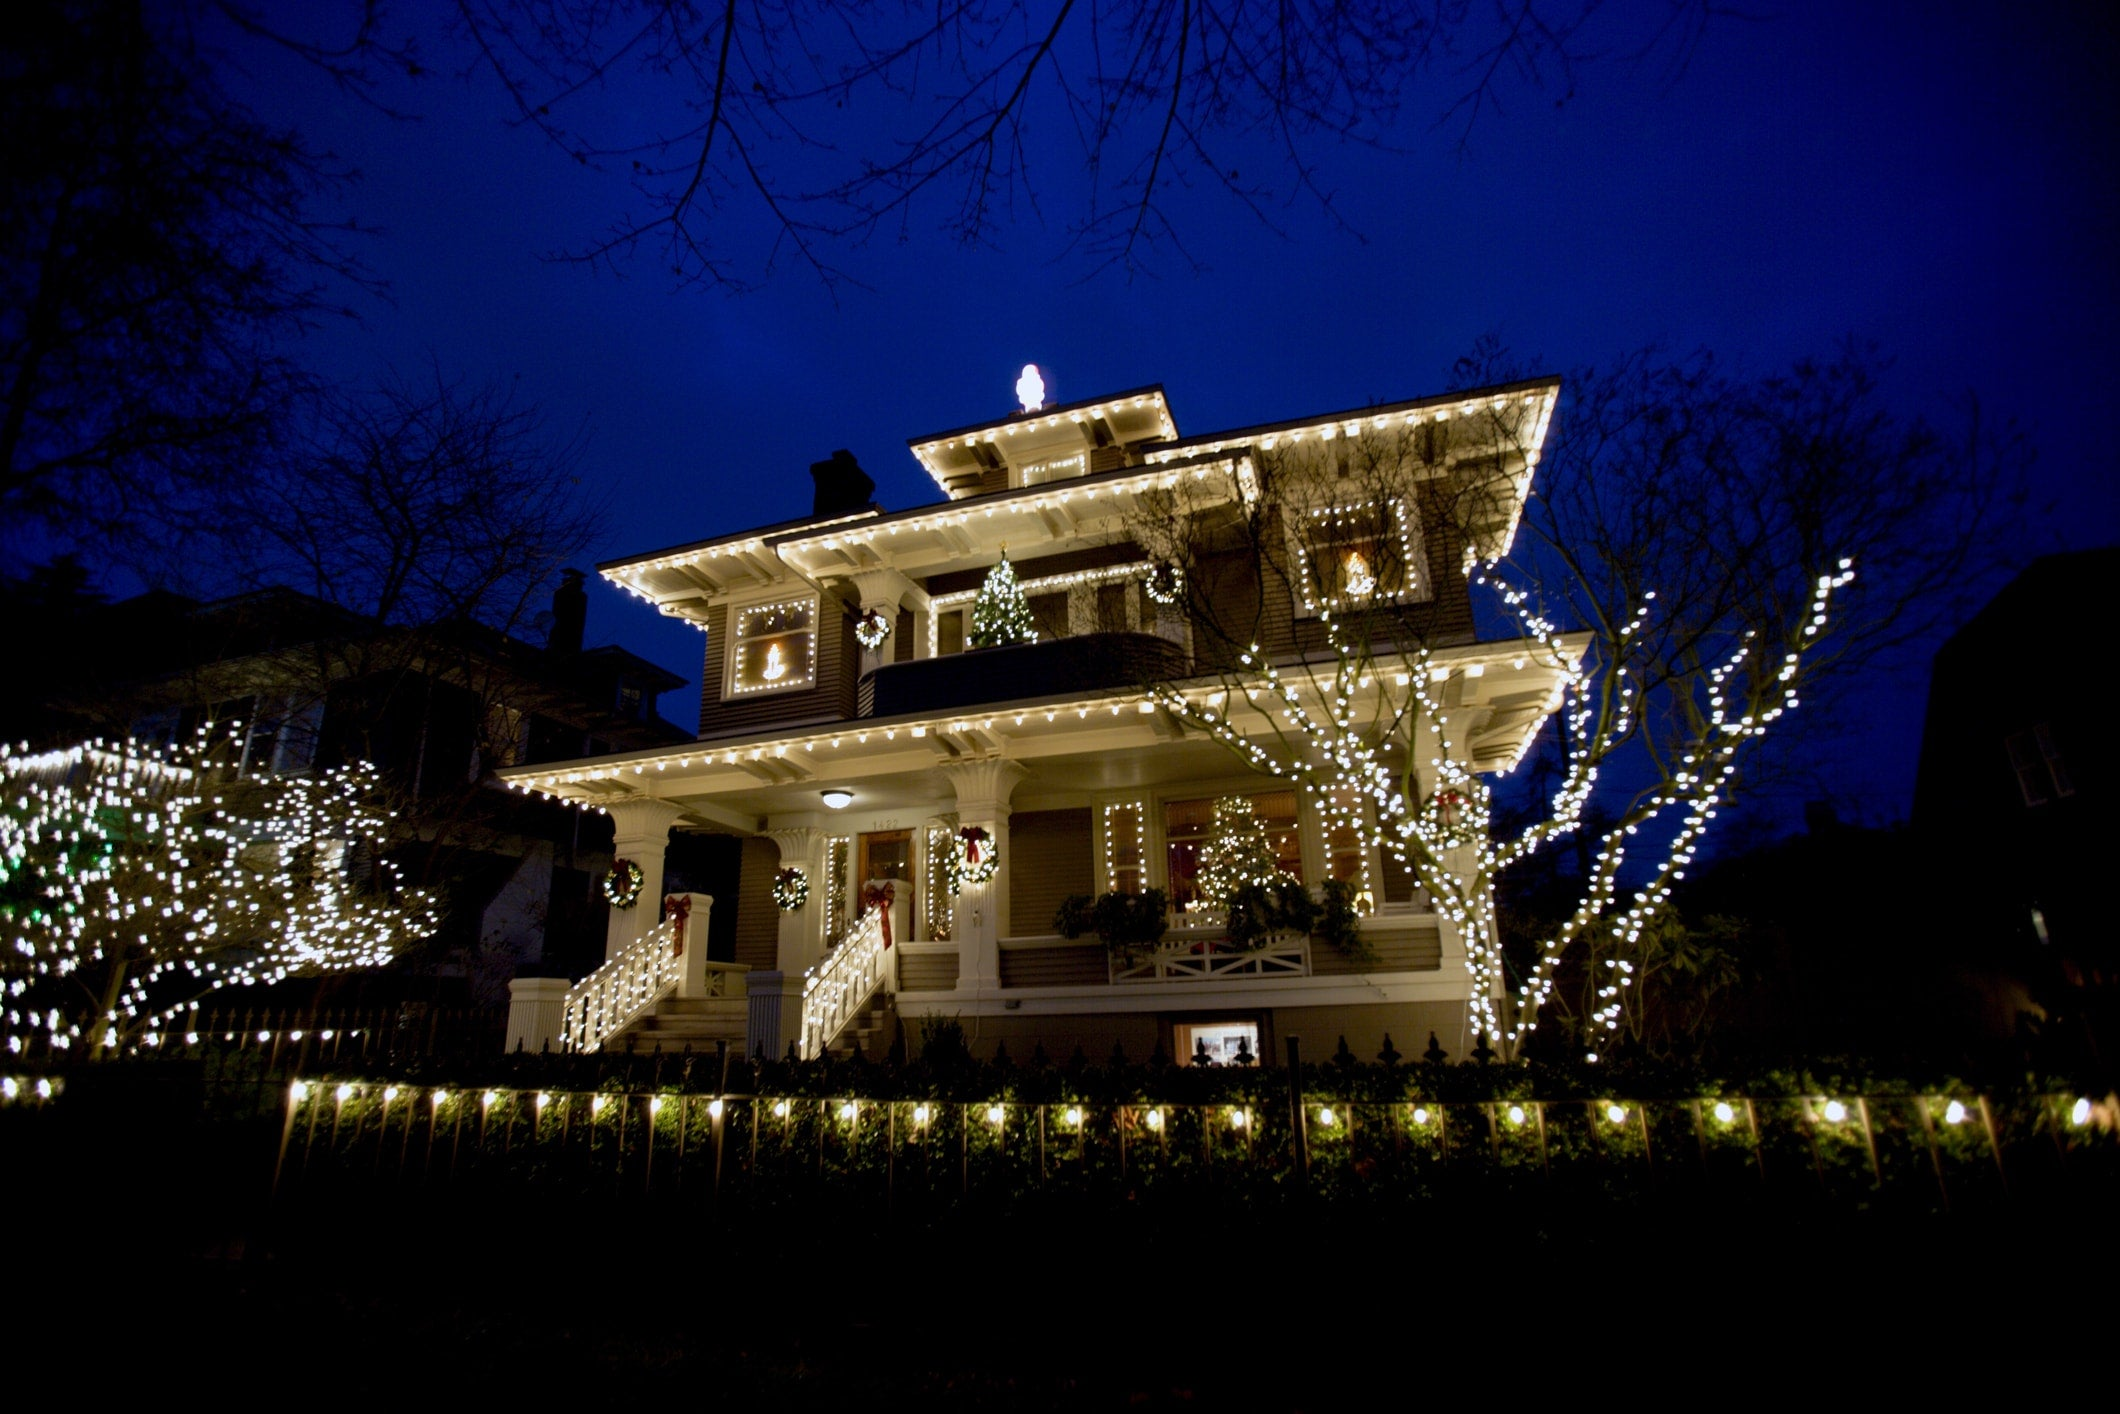 1 in 4 Americans Aren't Planning to Protect Their Homes From Burglary This Holiday Season